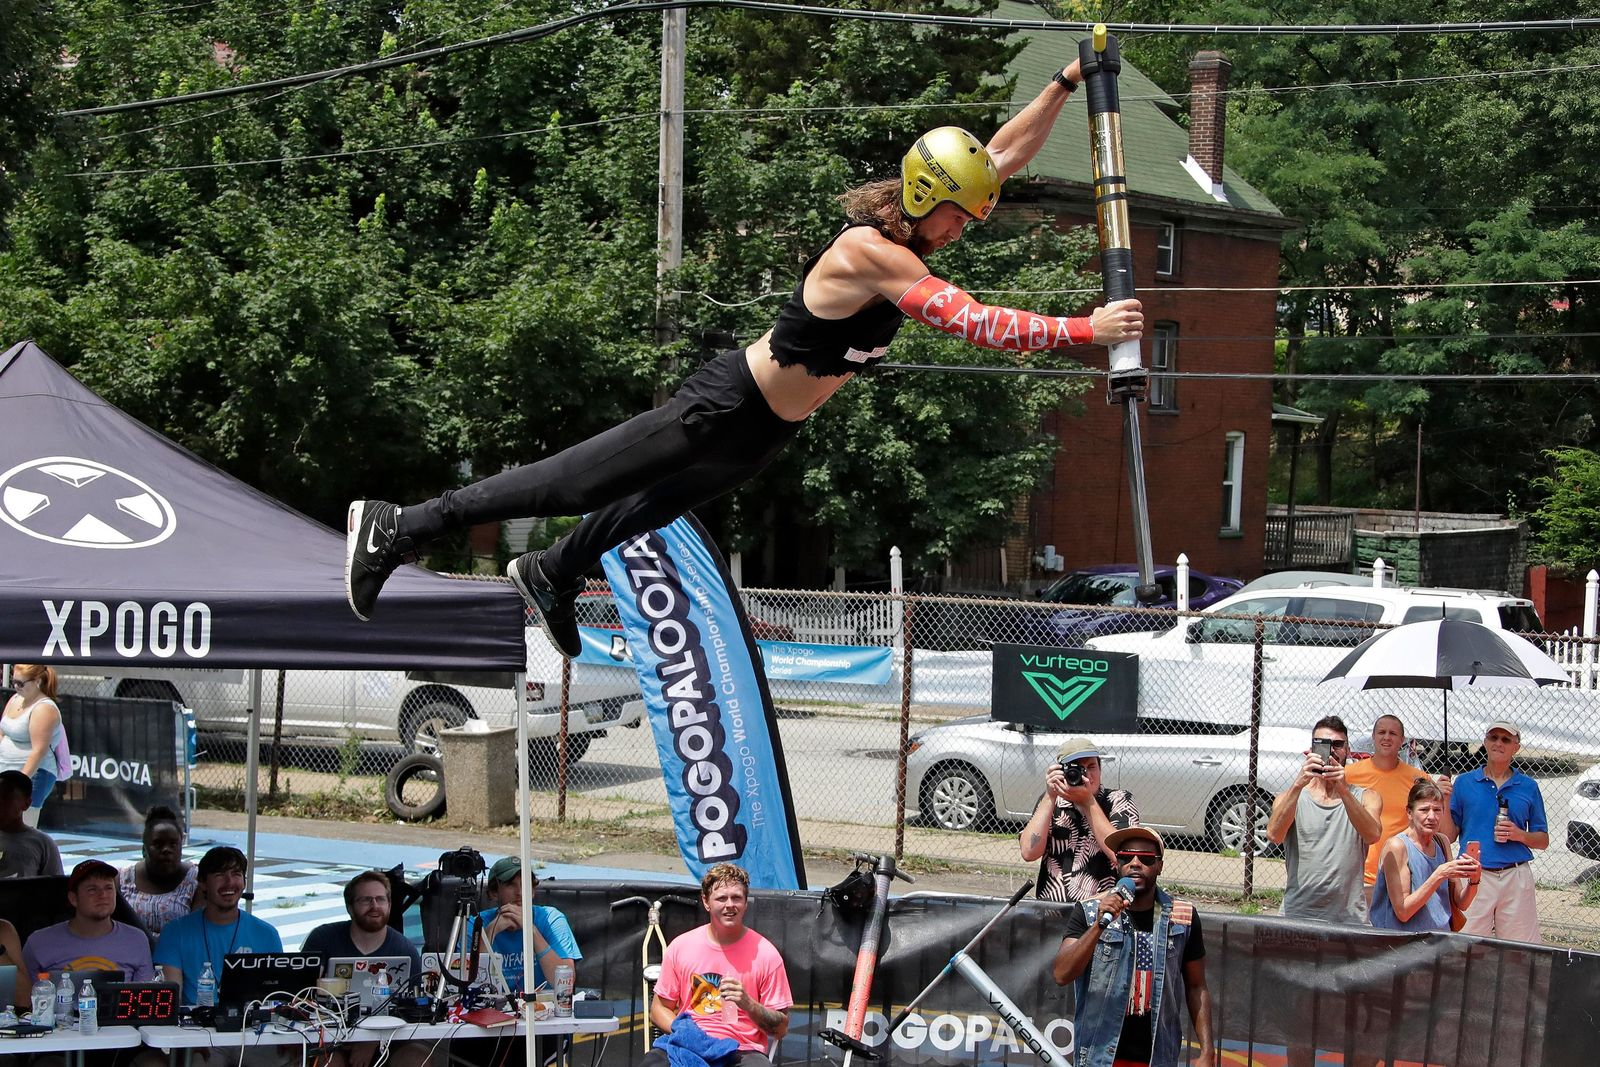 Harry White, of Orillia, Canada, performs in Pogopalooza, The World Championships of Pogo in Wilkinsburg, Pa., Saturday, July 20, 2019. White is the only Canadian in the two day competition. (AP Photo/Gene J. Puskar)